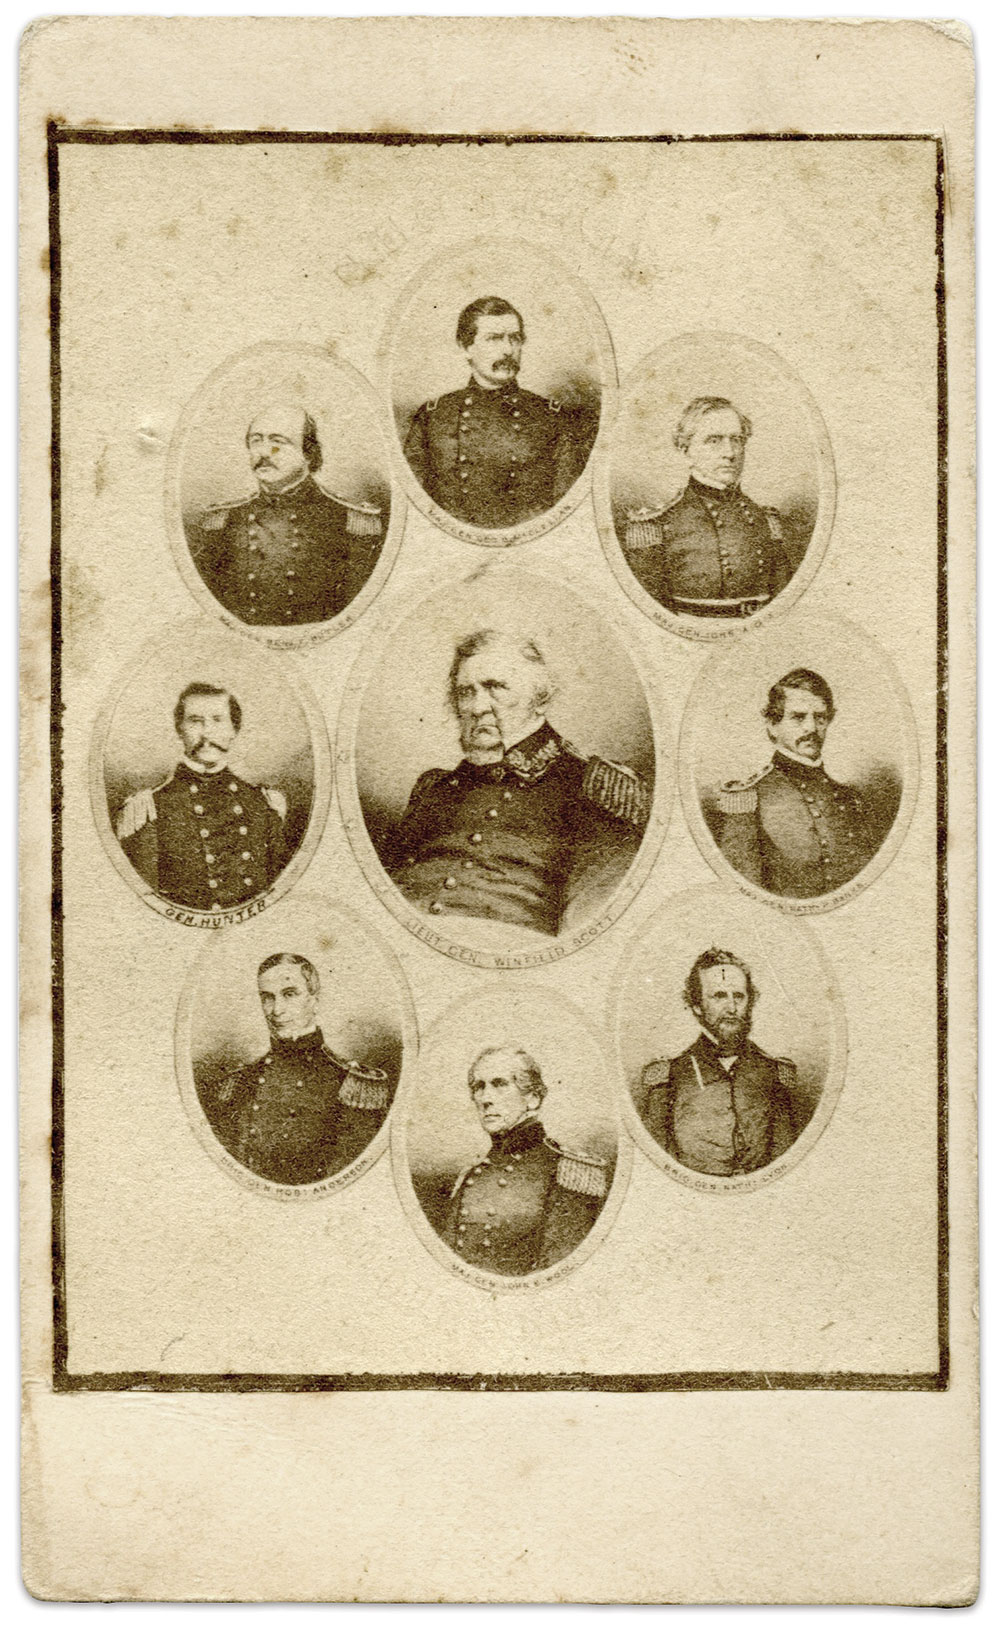 EARLY MONTAGE: Lt. Gen. Winfield Scott is pictured with prominent generals prior to his retirement in October 1861. Uncredited, the quality of the print suggests this is a pirated version of an original perhaps published by photographer Charles D. Fredricks in New York City.